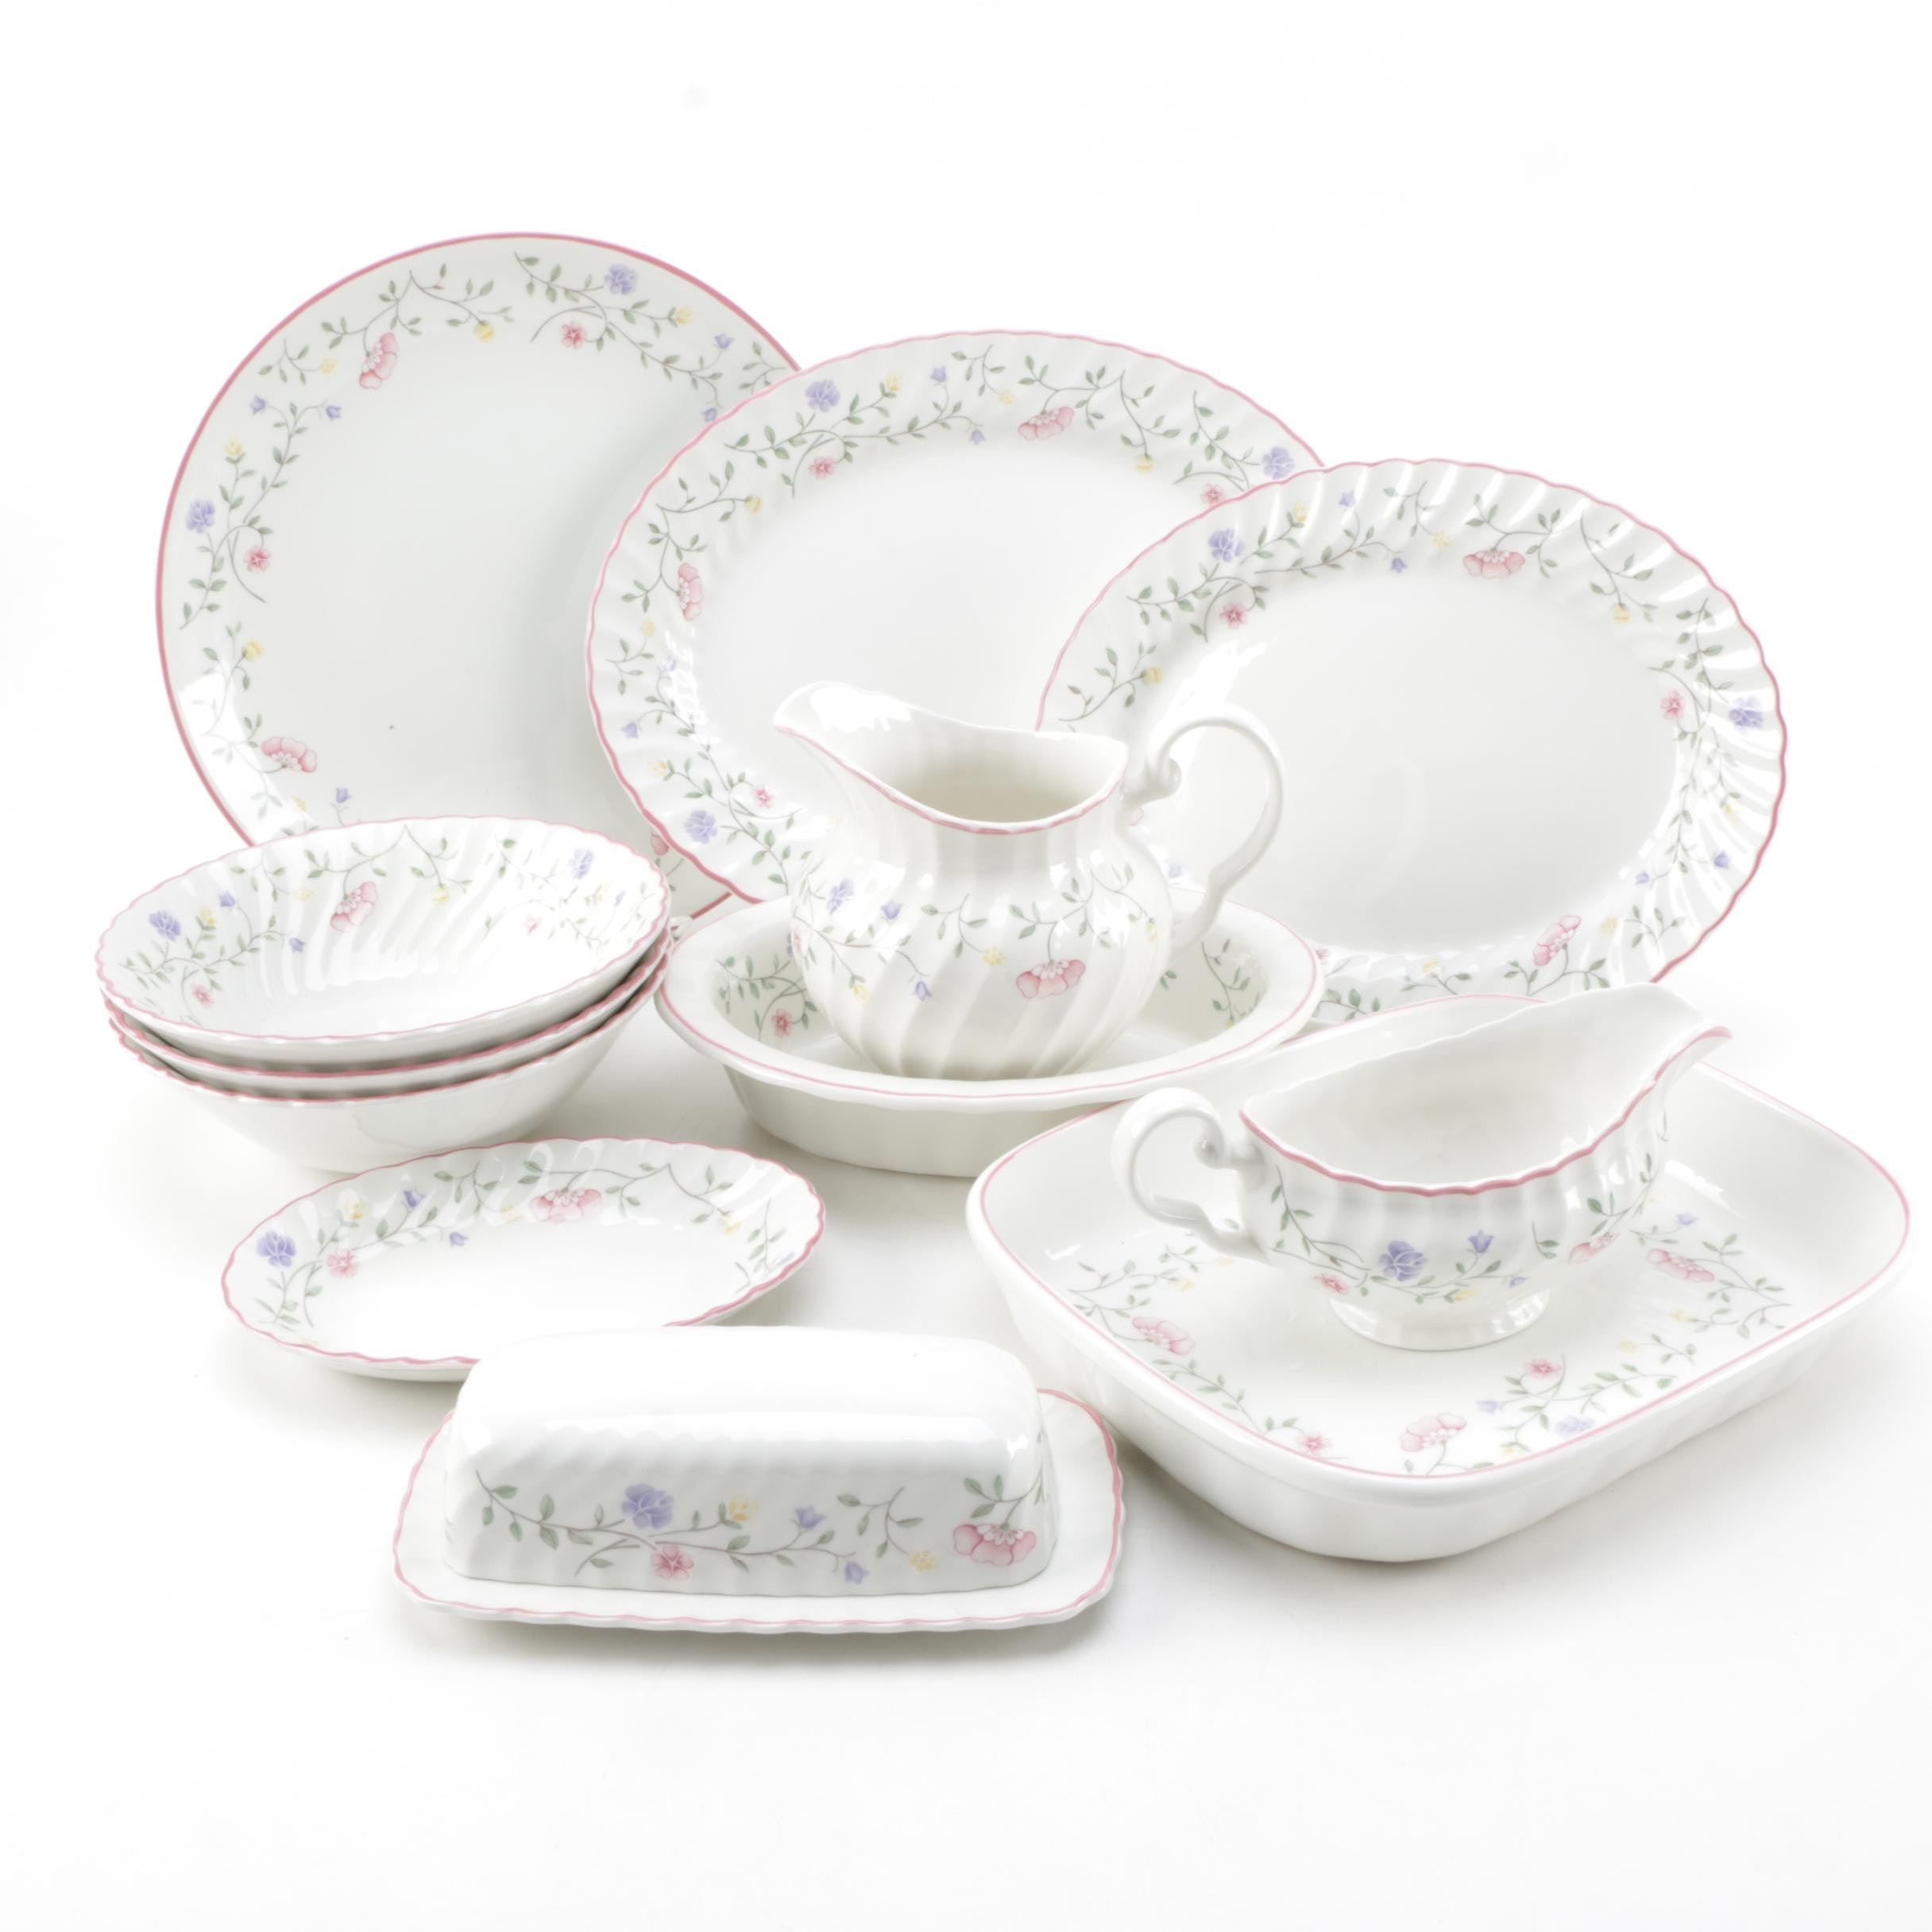 Johnson Brothers  Summer Chintz  Tableware and Serveware ...  sc 1 st  EBTH.com & Johnson Brothers